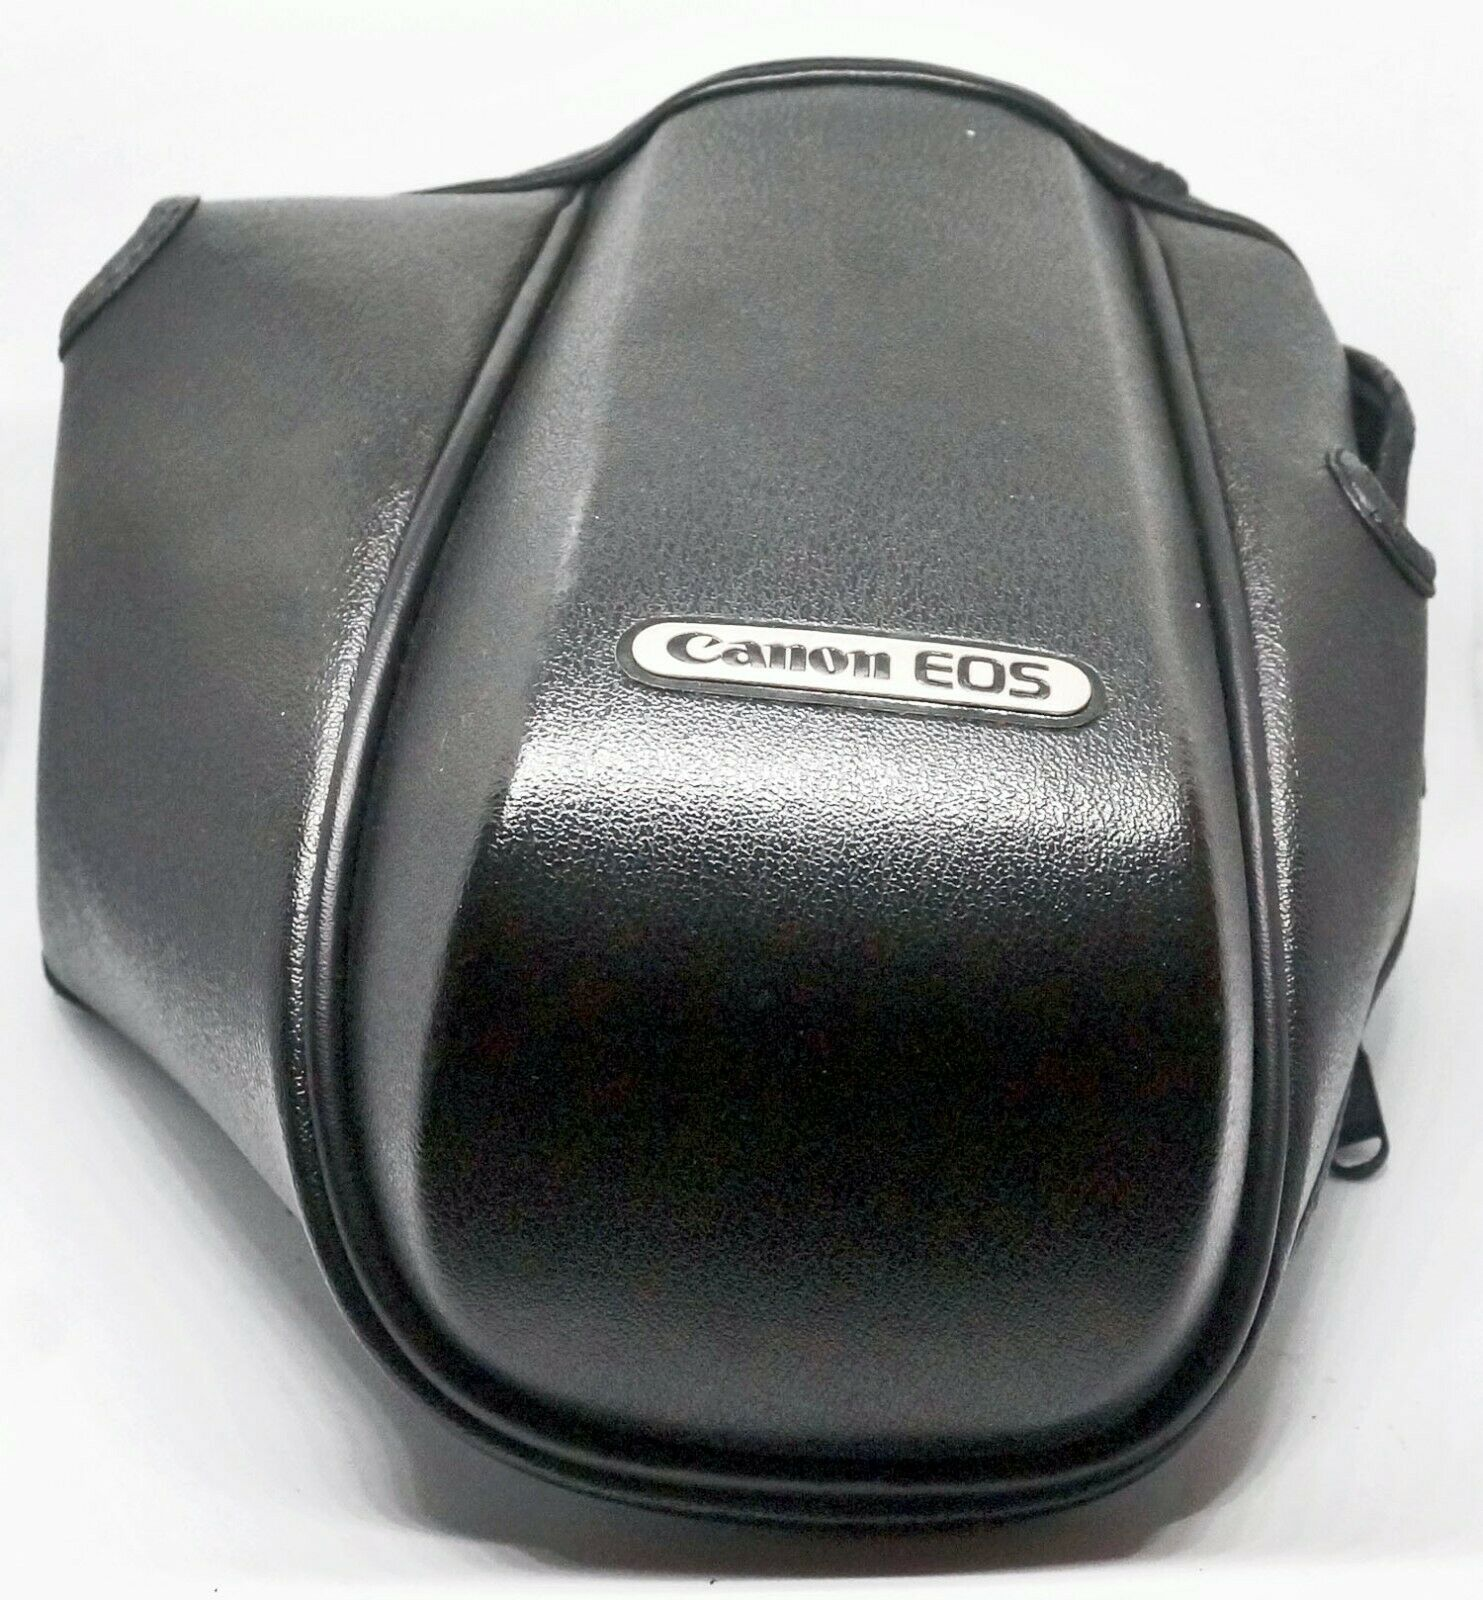 Case For CANON EOS-10 And Similar SLR Cameras with Zoom PHA0065  - $10.00